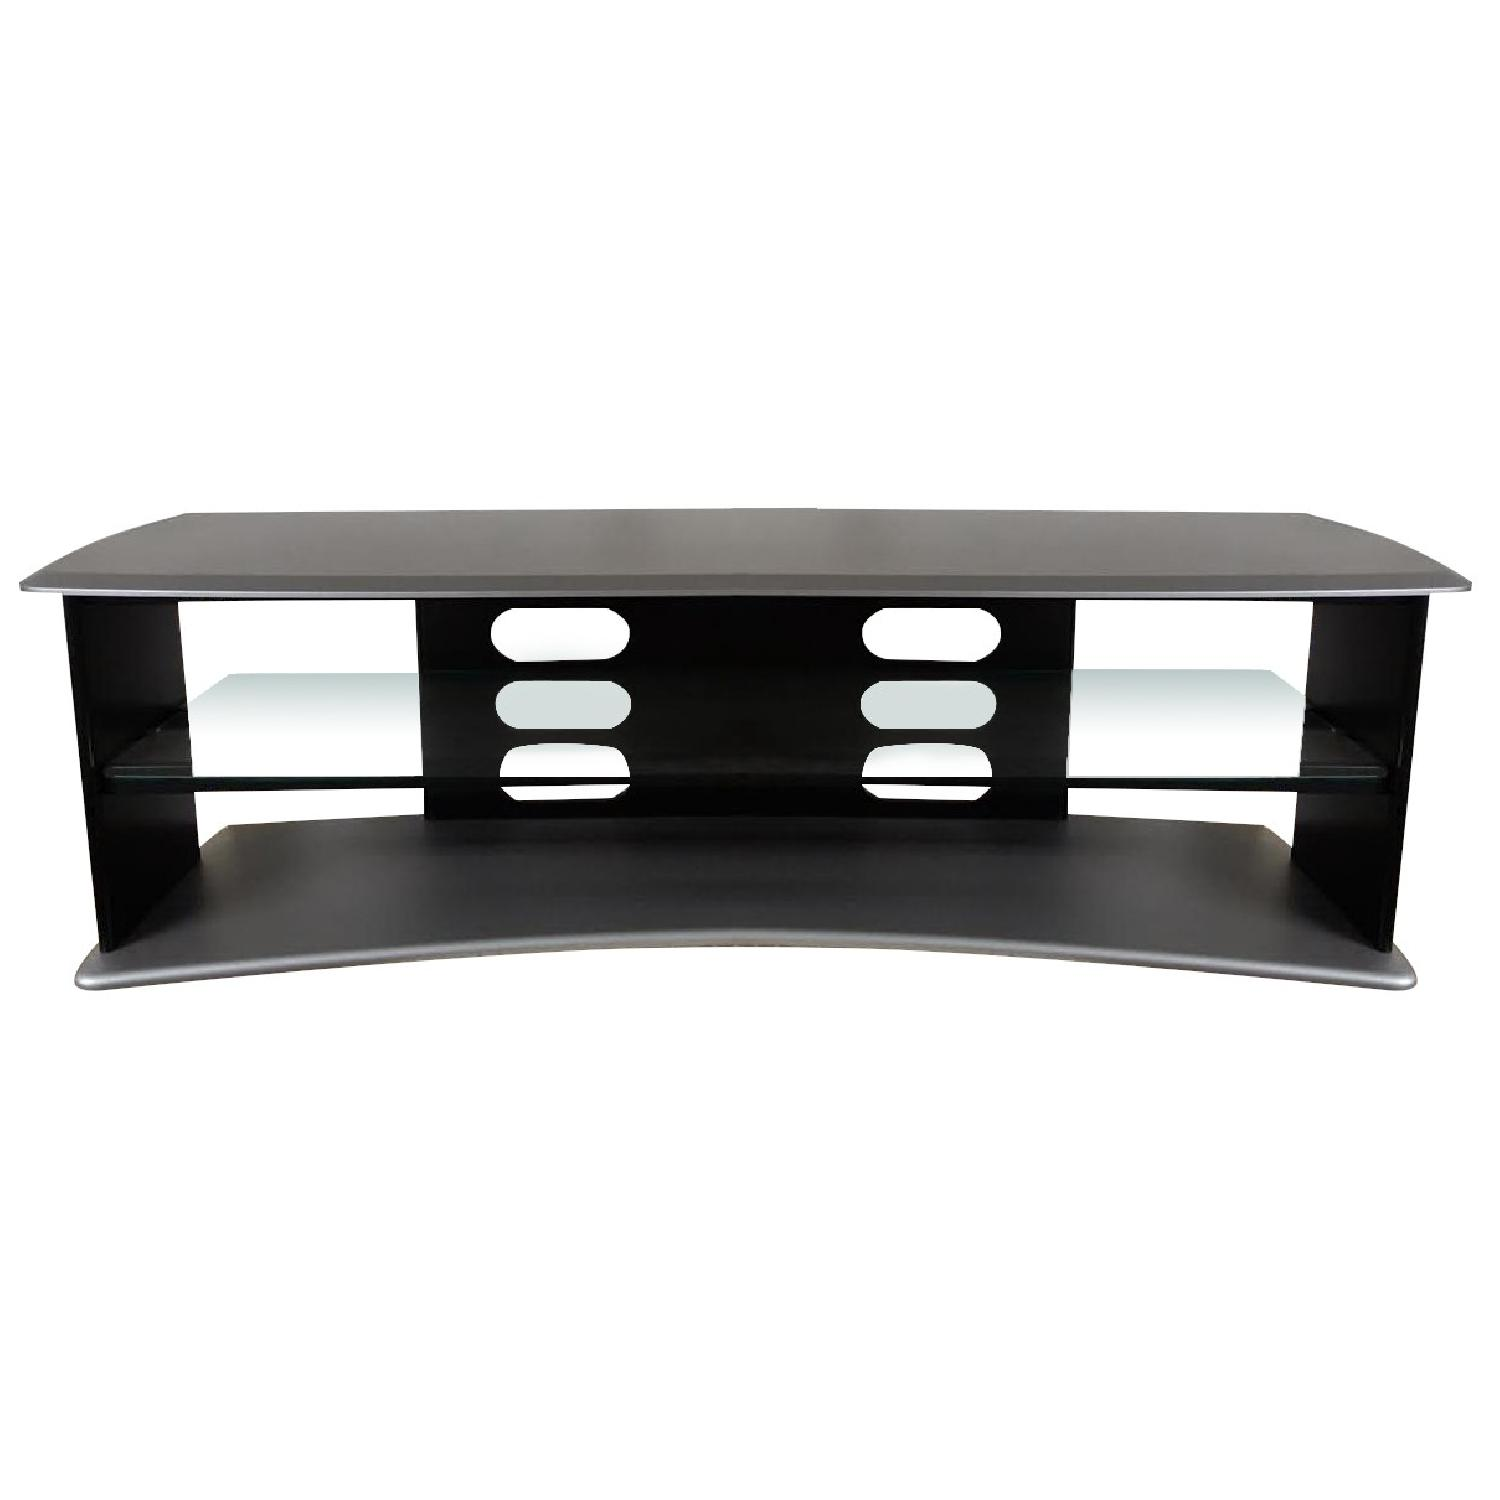 Black & Silver TV Stand - image-0